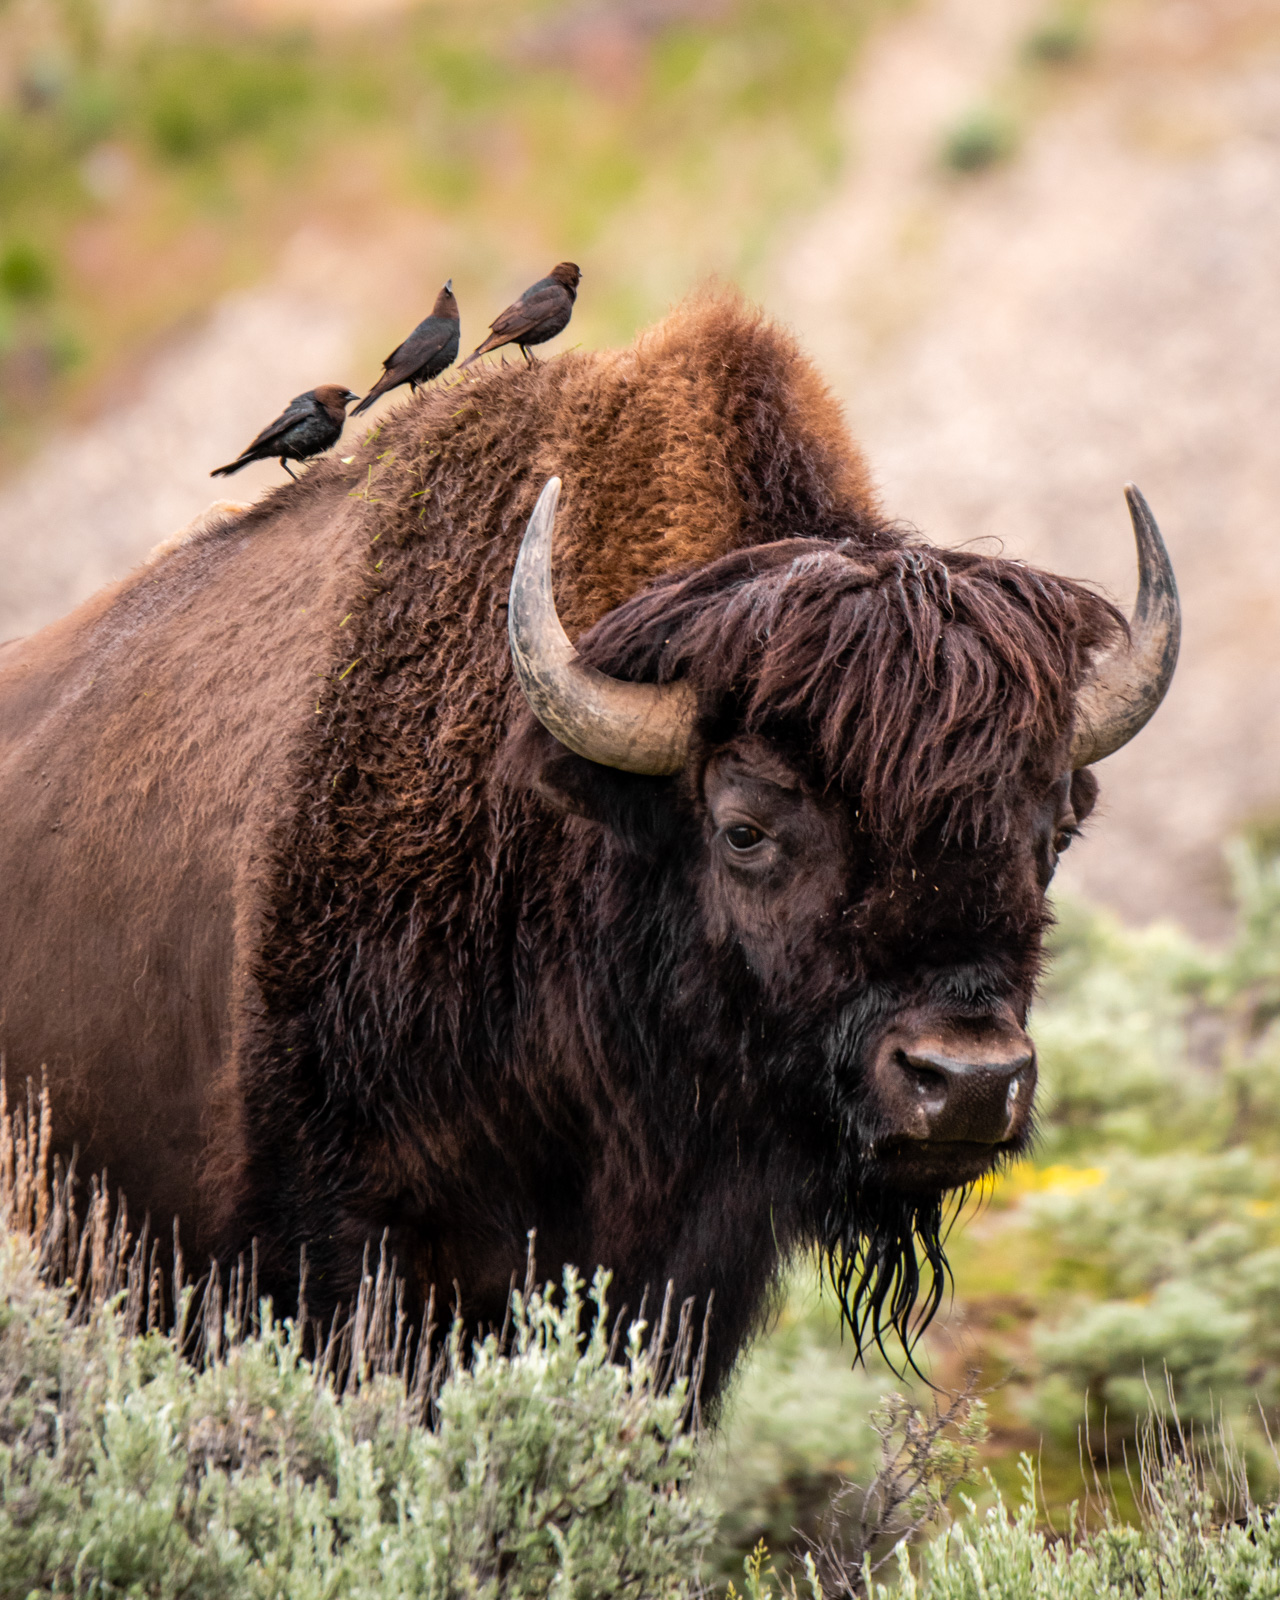 Cowbirds ride the bison in a symbiotic relationship: the birds eat the insects and carry loose fur off to build nests, and the bison receives a cleaning.